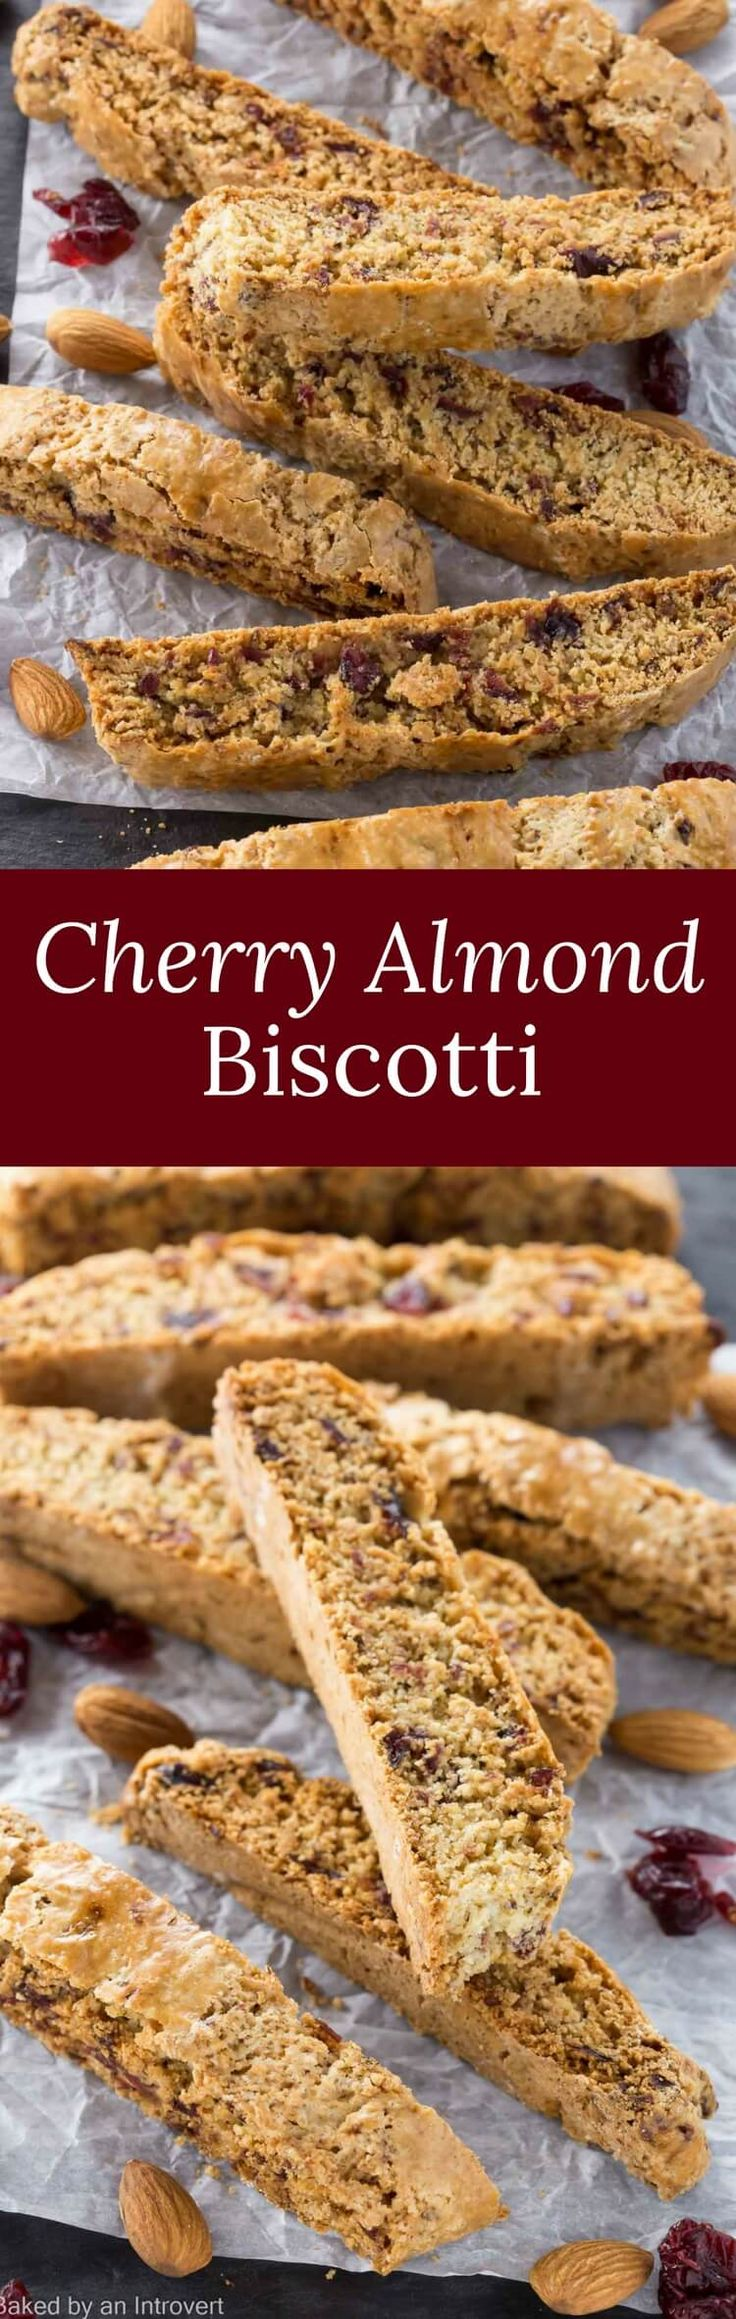 how to make italian biscotti recipes